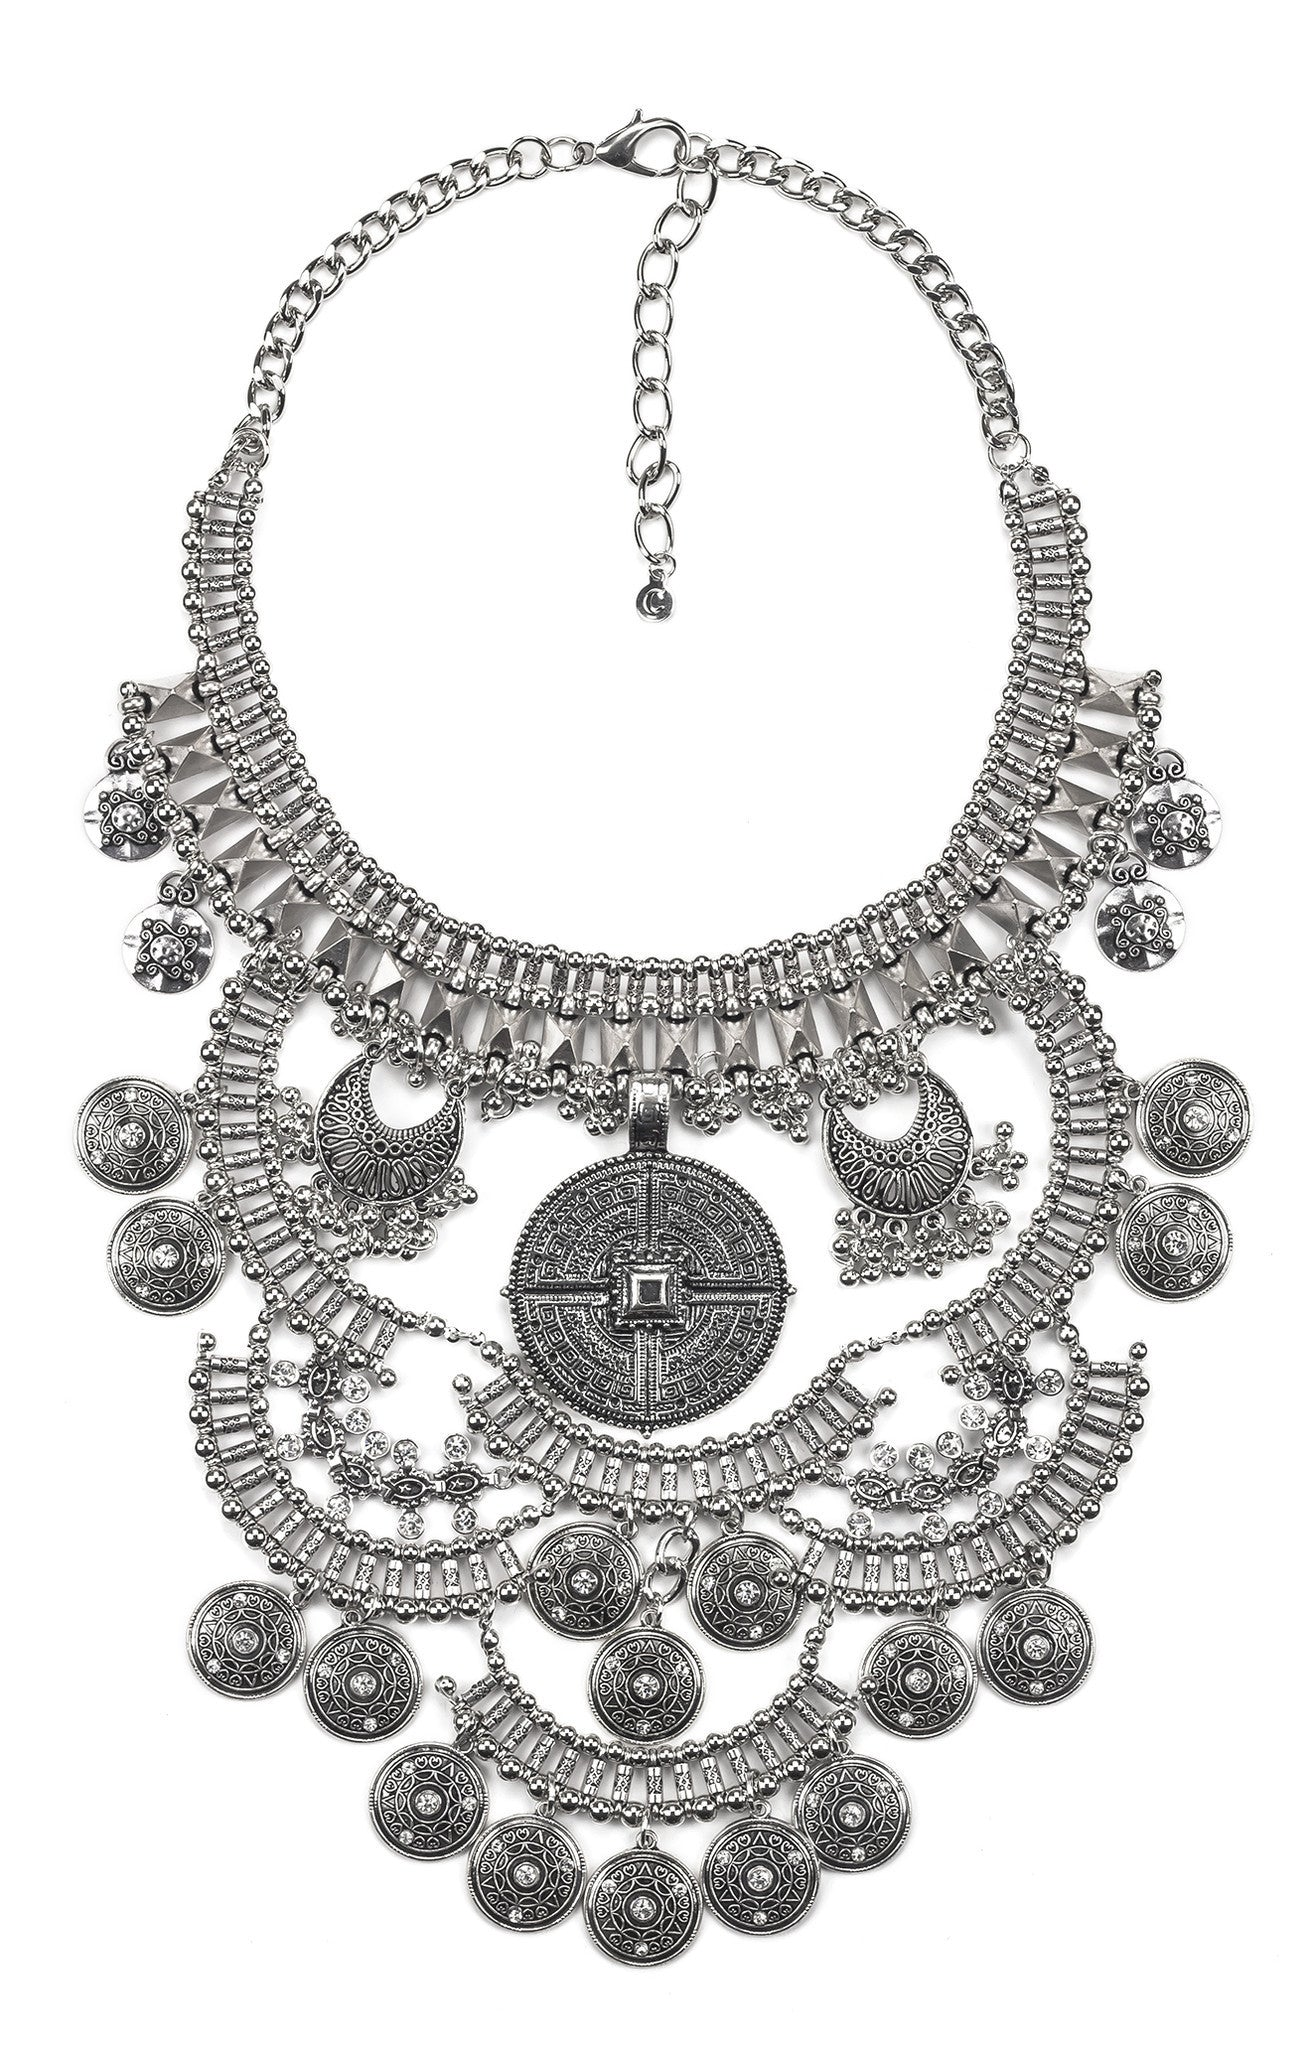 Medieval Armor Statement Necklace